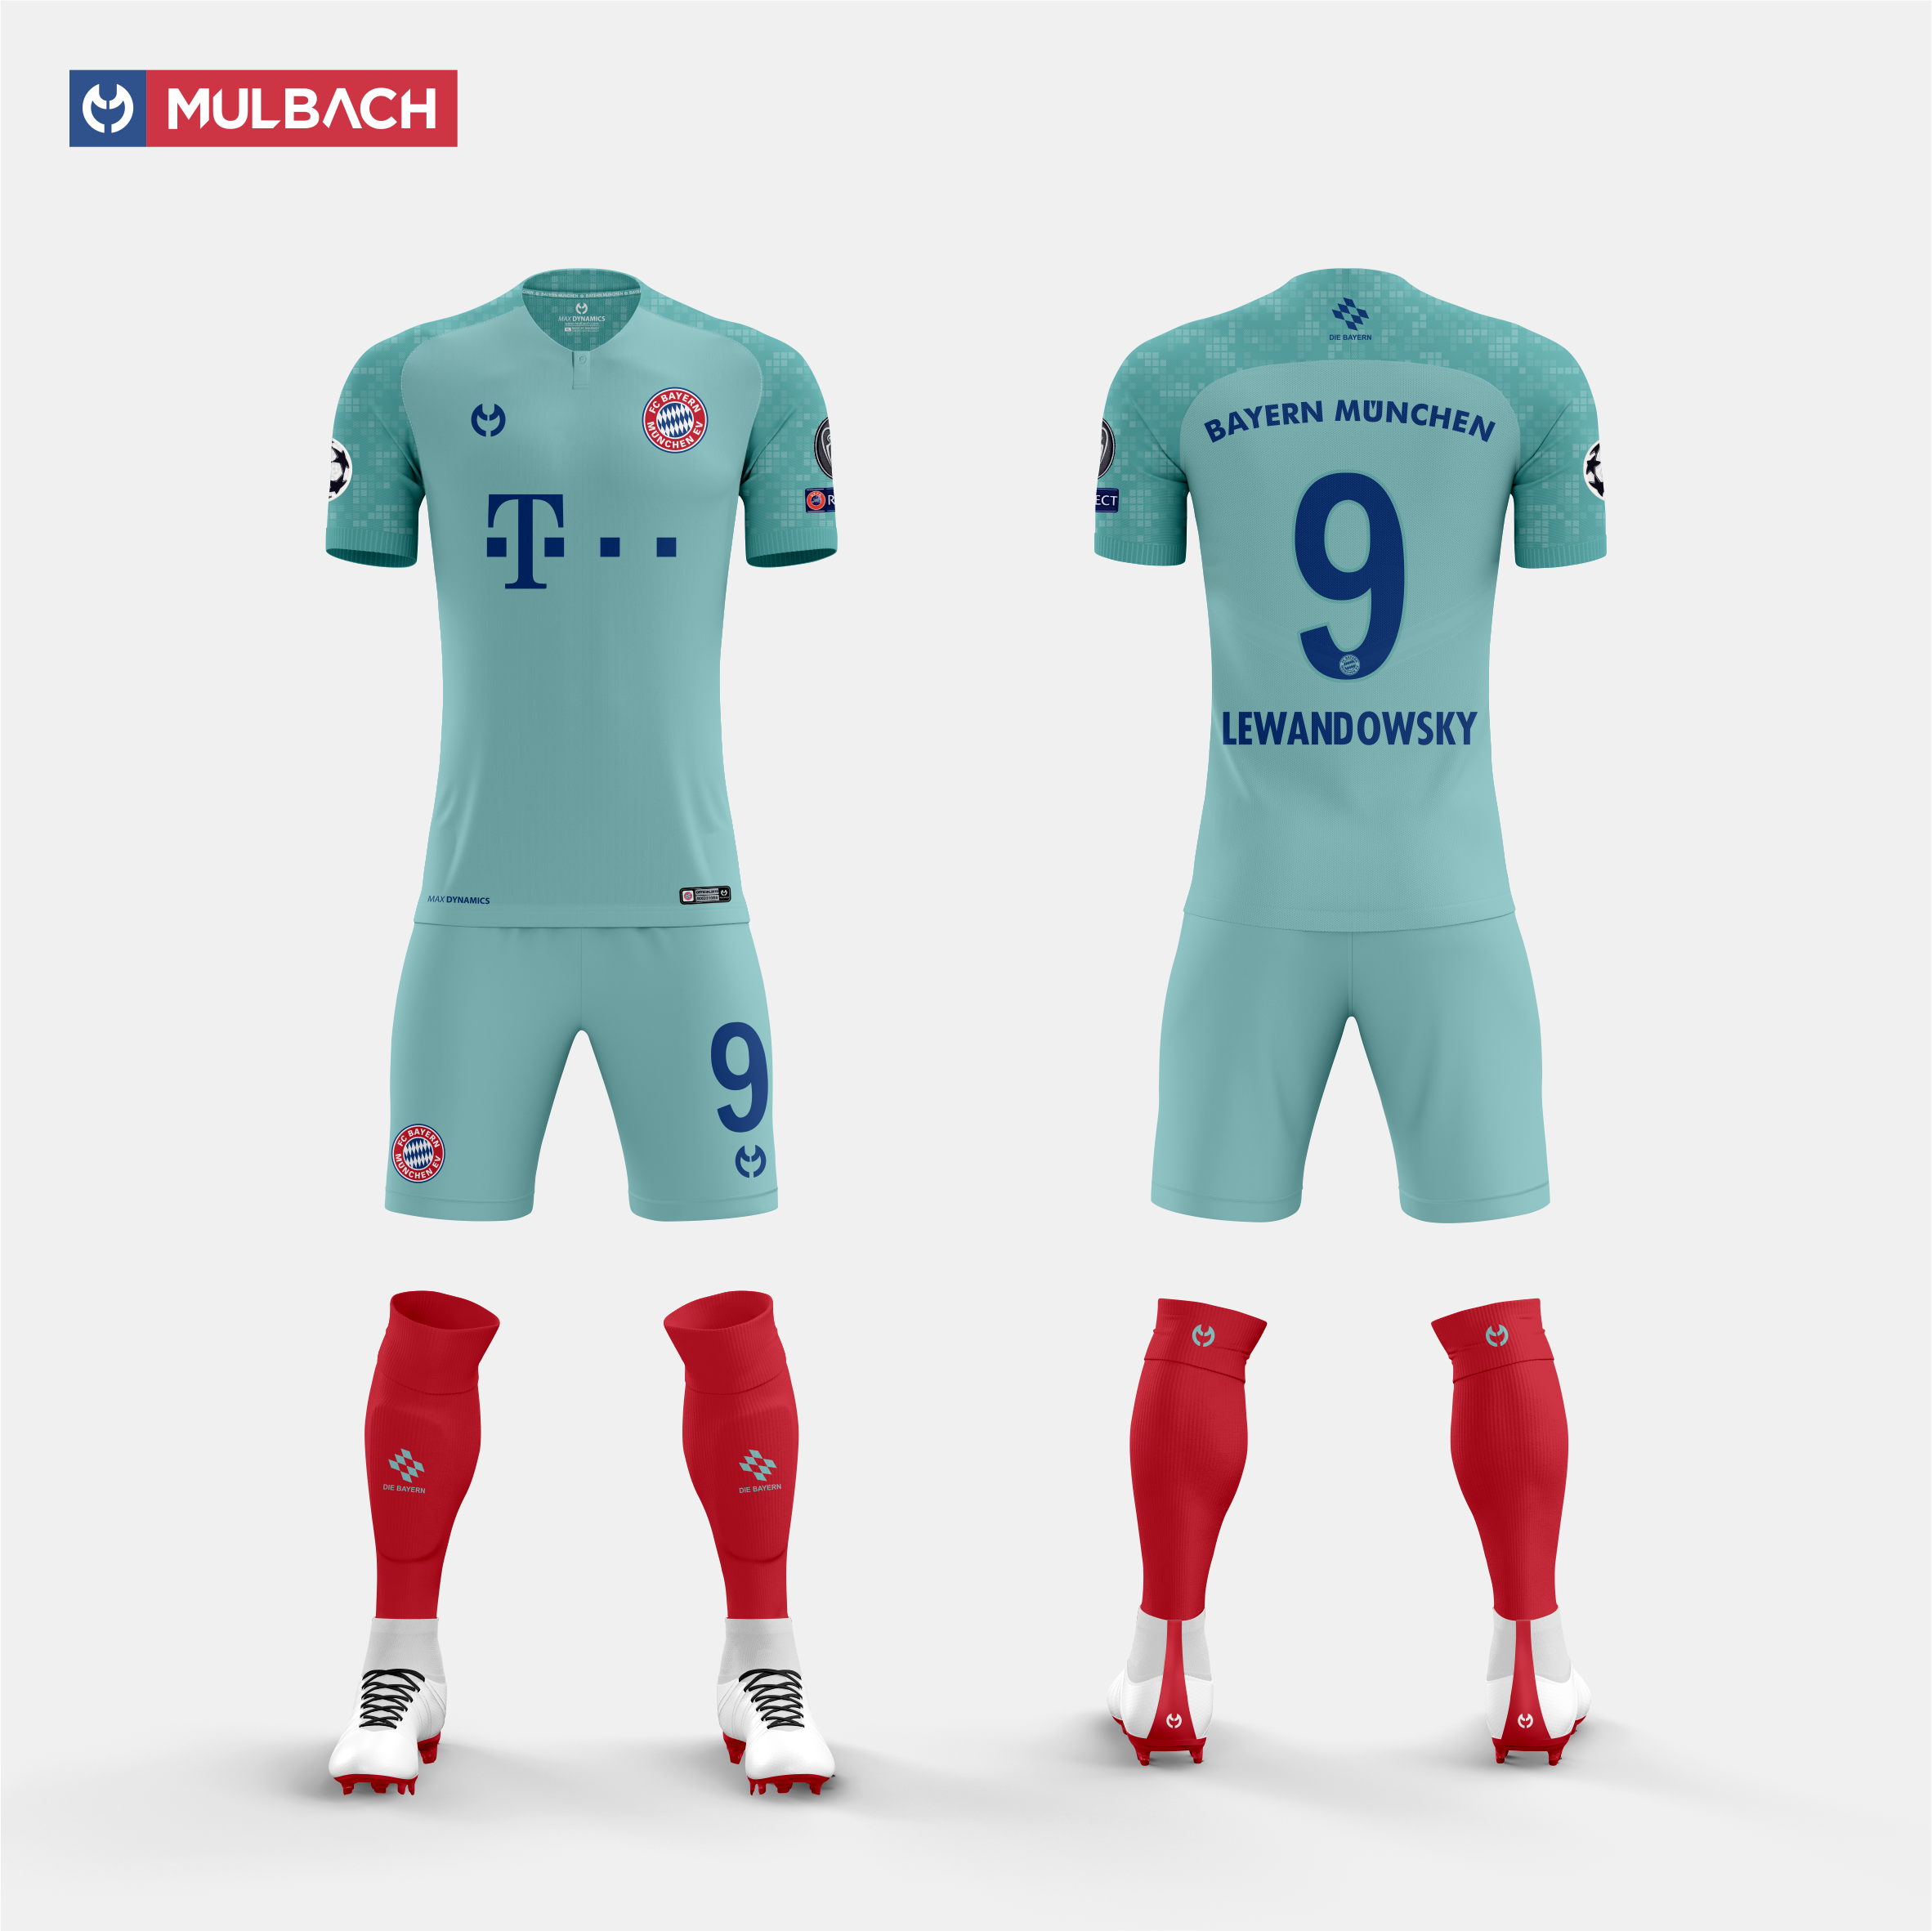 new product b8728 613a6 Bayern Munchen 2019/2020 Away Kit Concept